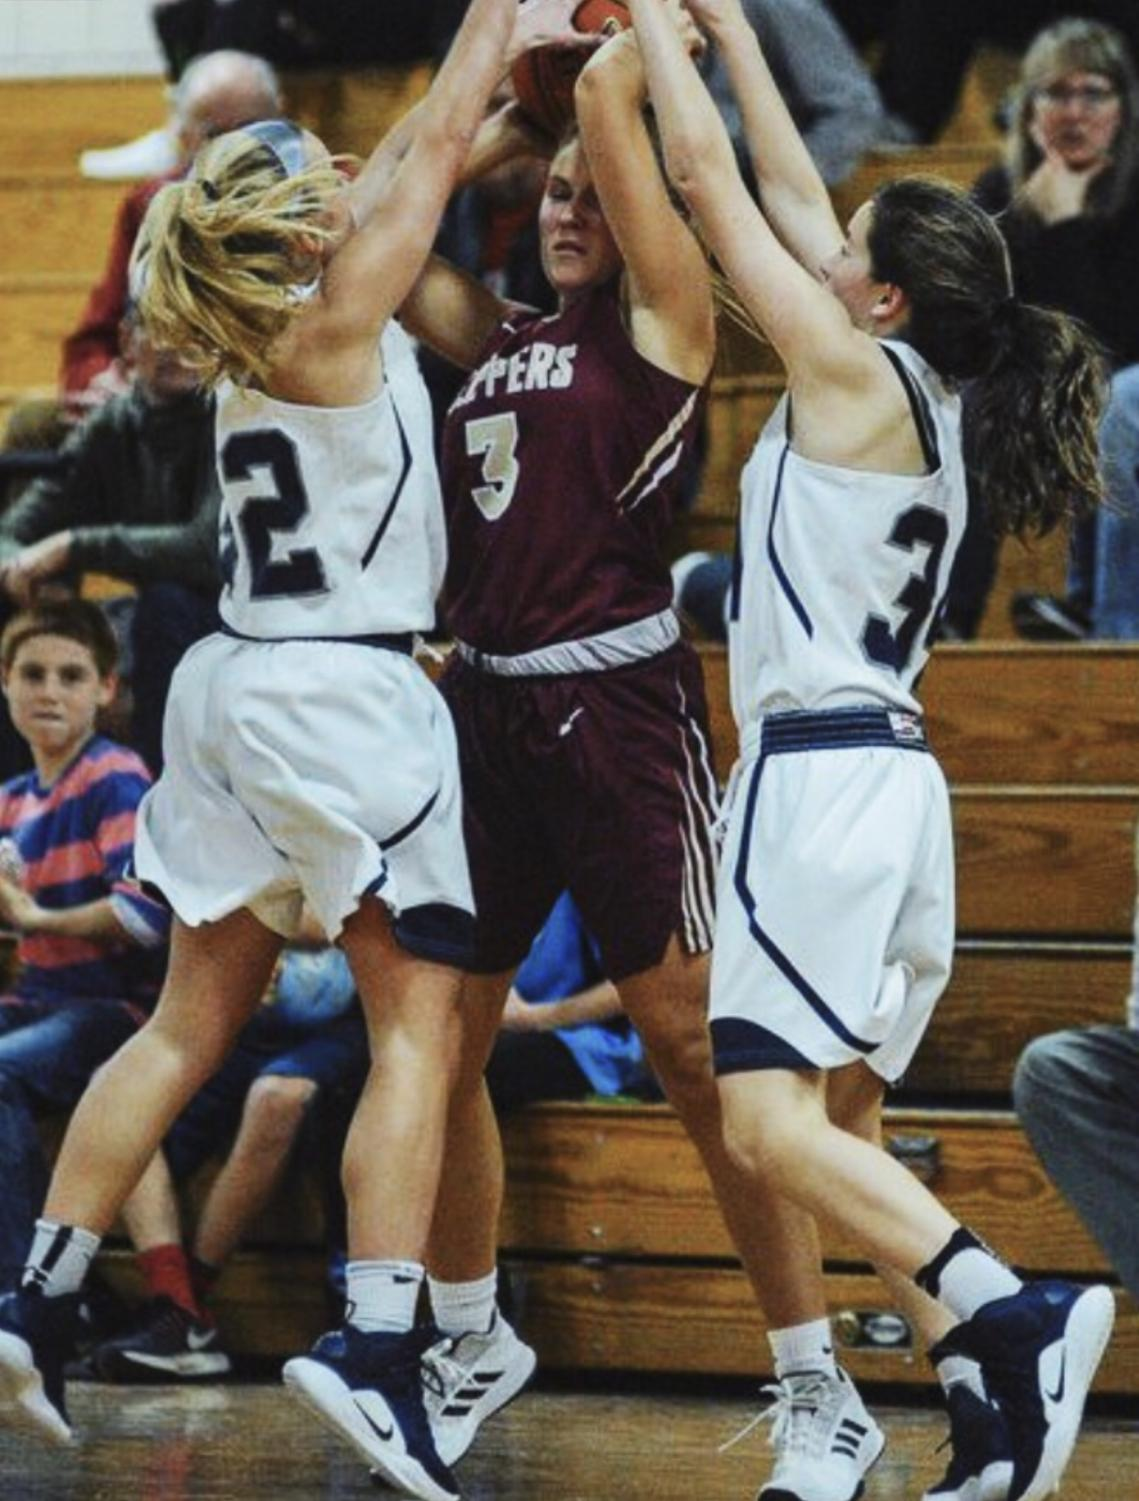 Maddy Rivers(left) jumping up to get the ball away from Newburyport